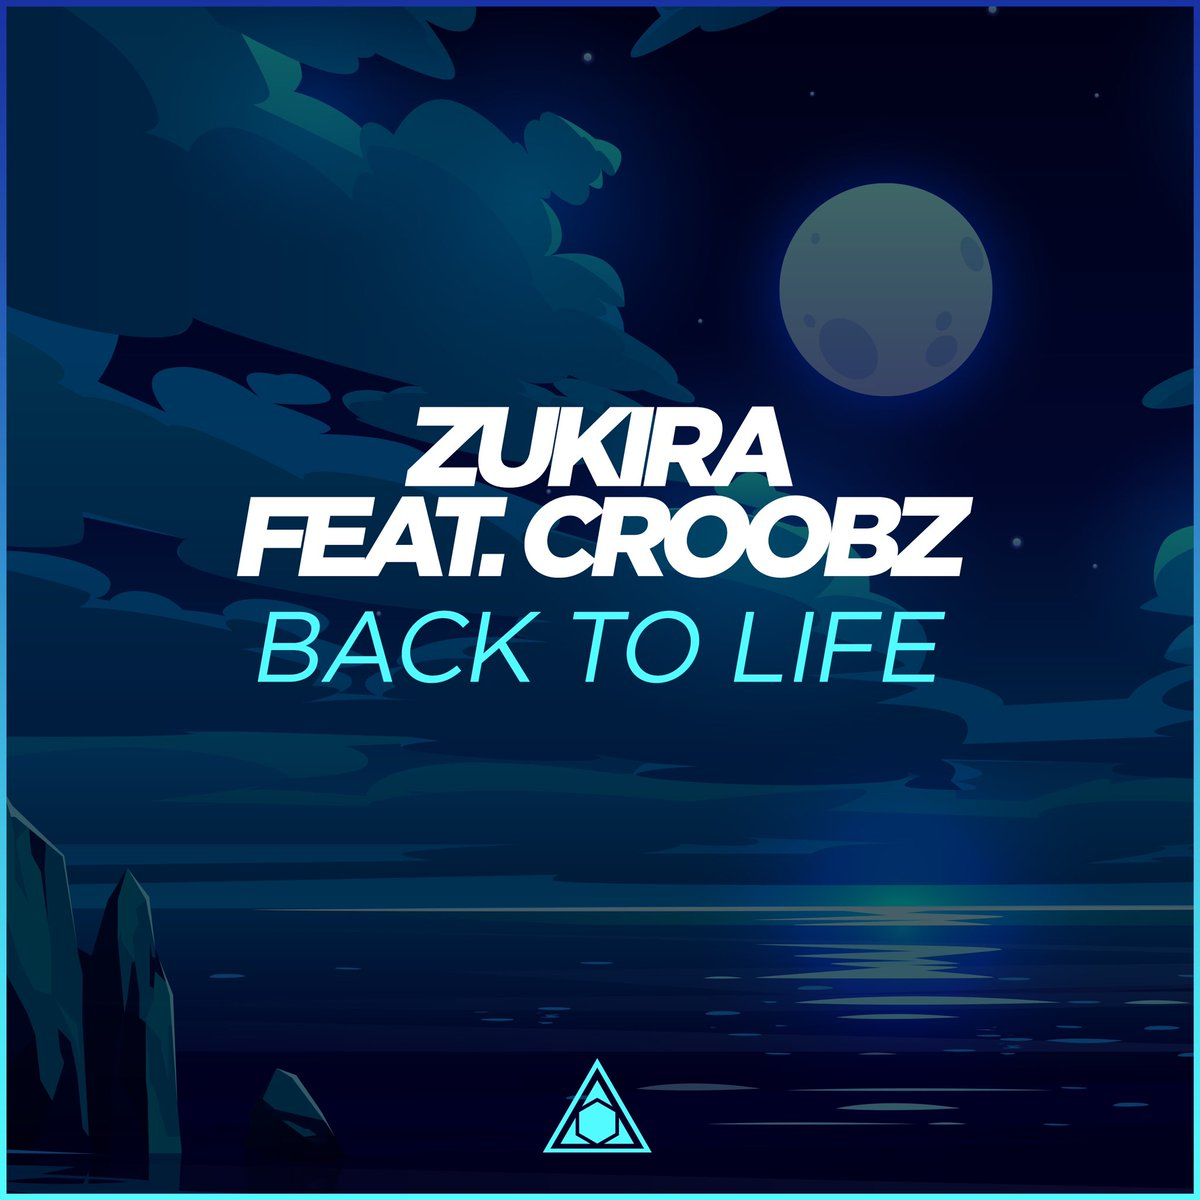 #Croobz is back to Concordia! His upcoming release together with @ZukiraMusic #BackToLife will be out on 13.03! 😍🔥  Listen to preview 👉